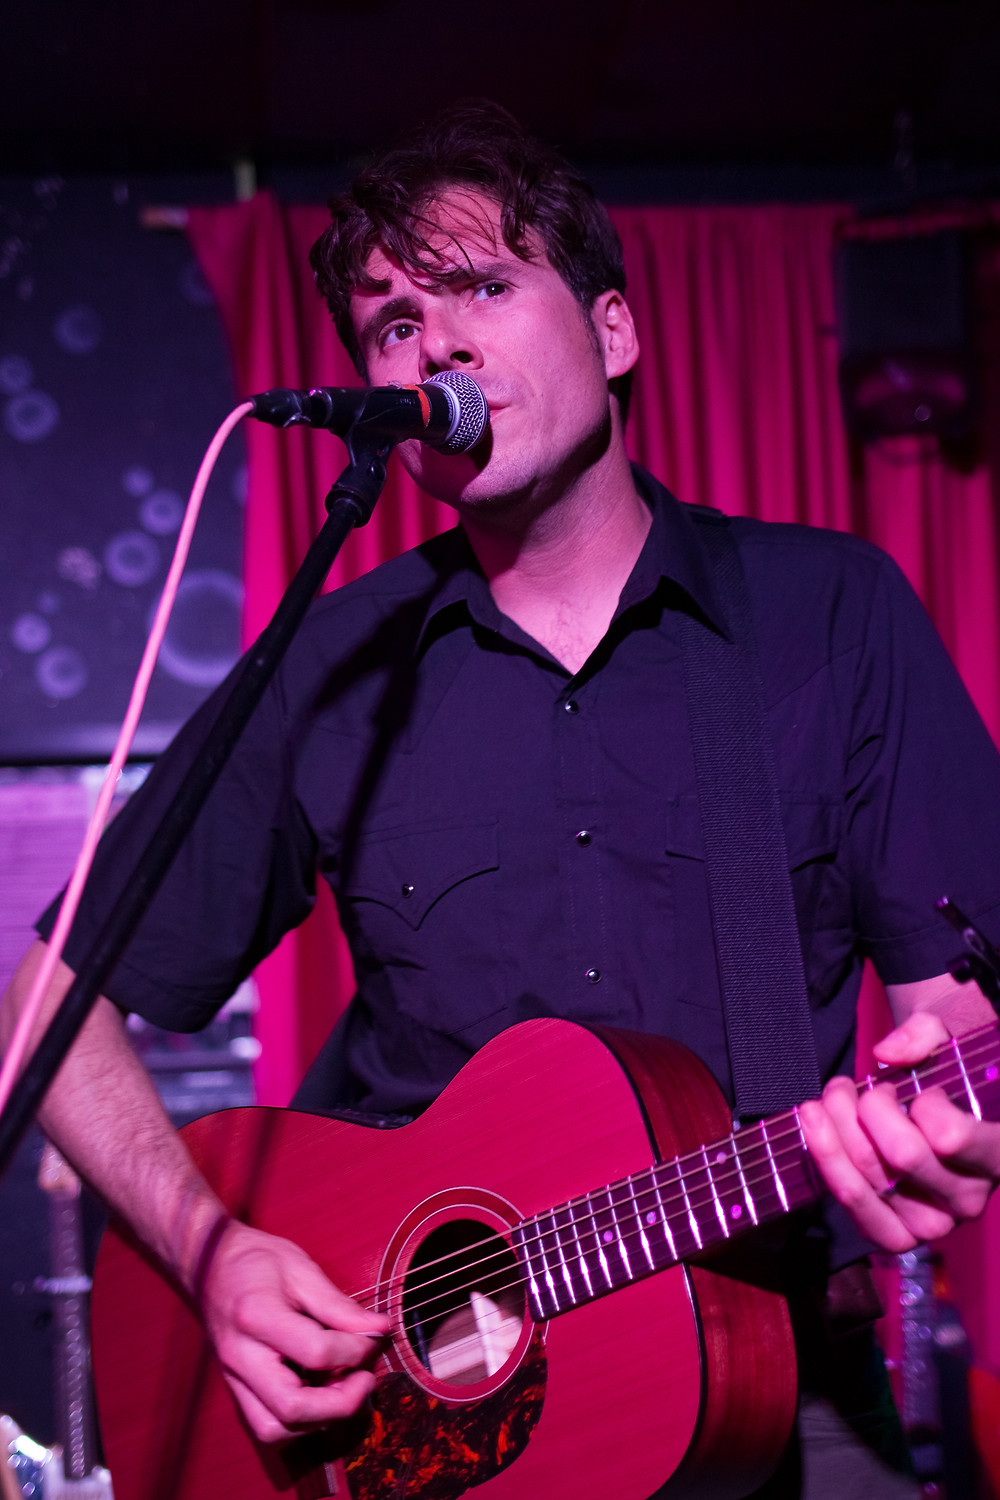 Jim Adkins, Jimmy Eat World, Bar Pink, Acoustic, Concert, Concert Photography, Live Music